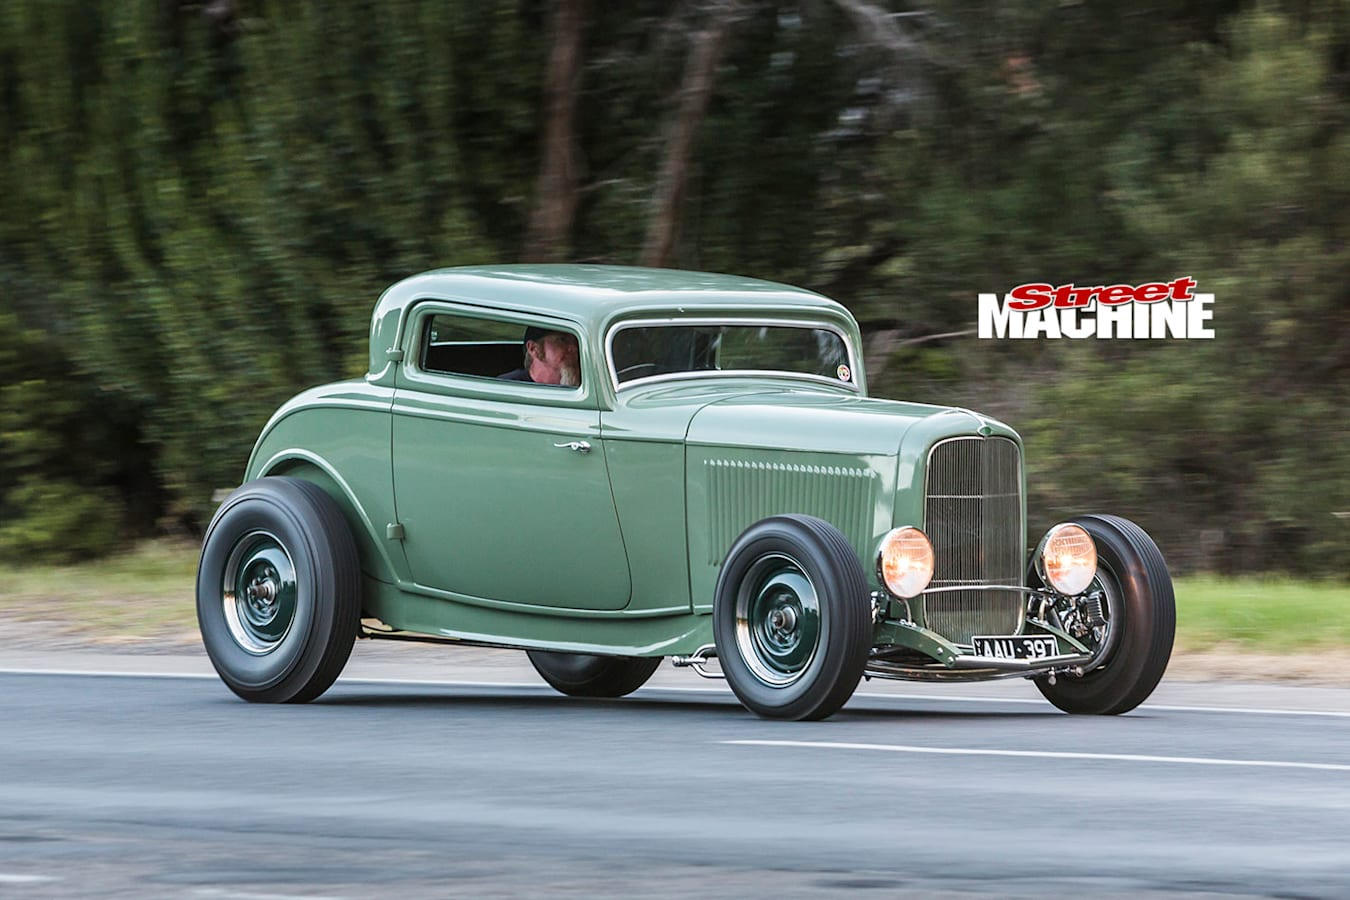 Ford 3-window coupe onroad